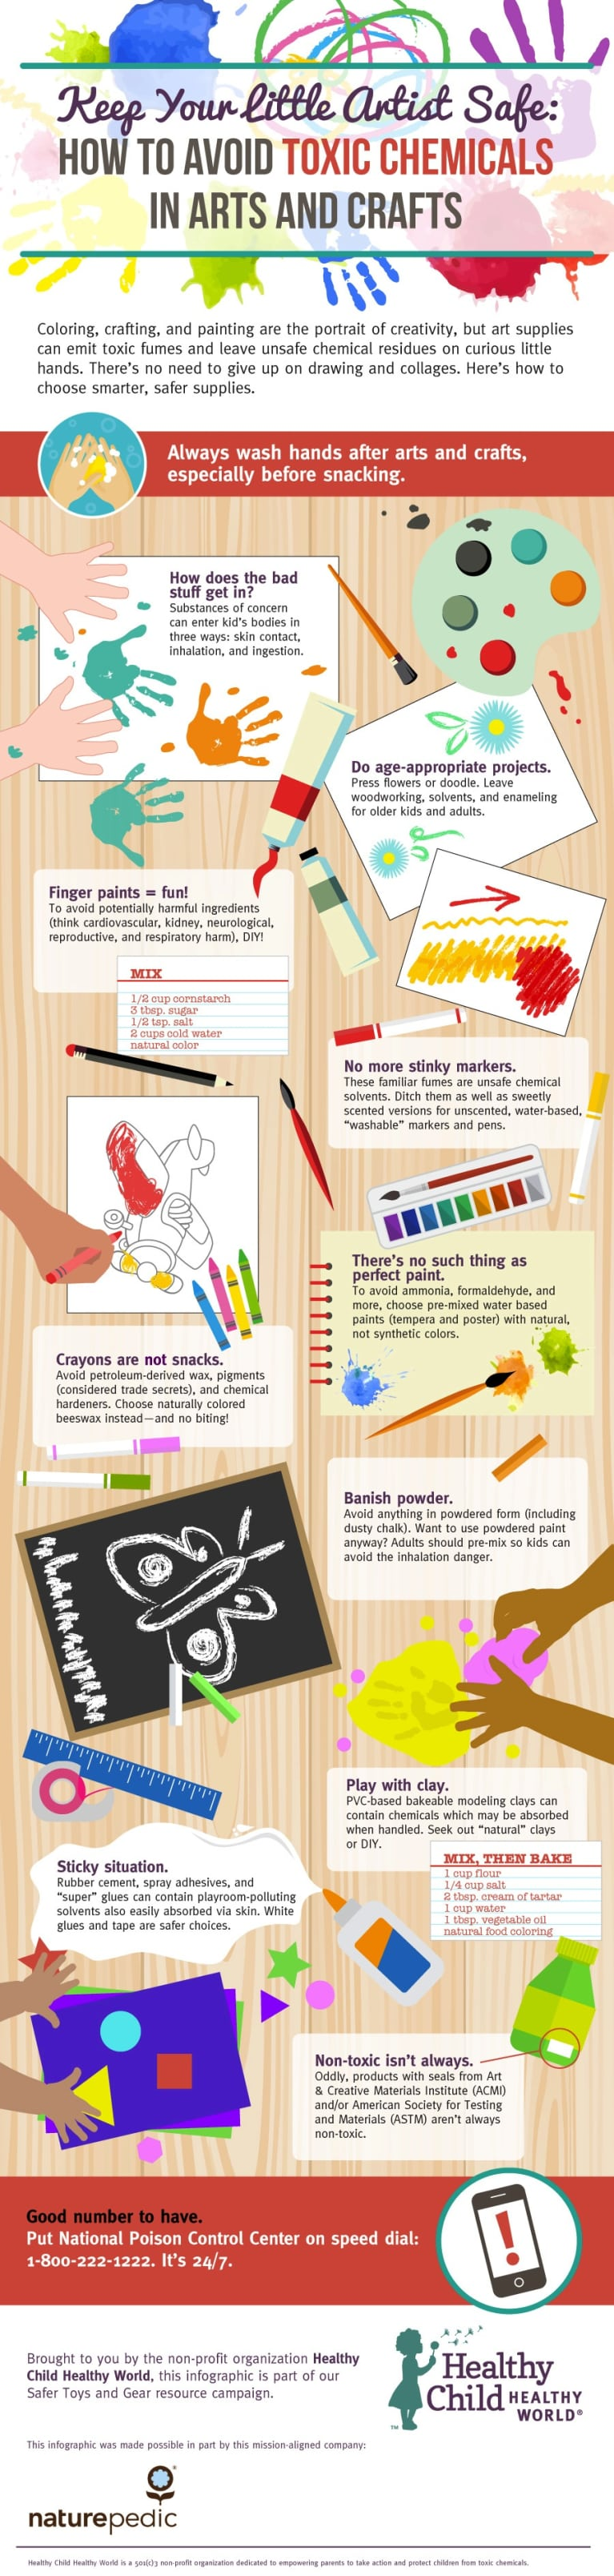 How To Avoid Toxic Chemicals In Arts & Crafts (Infographic)